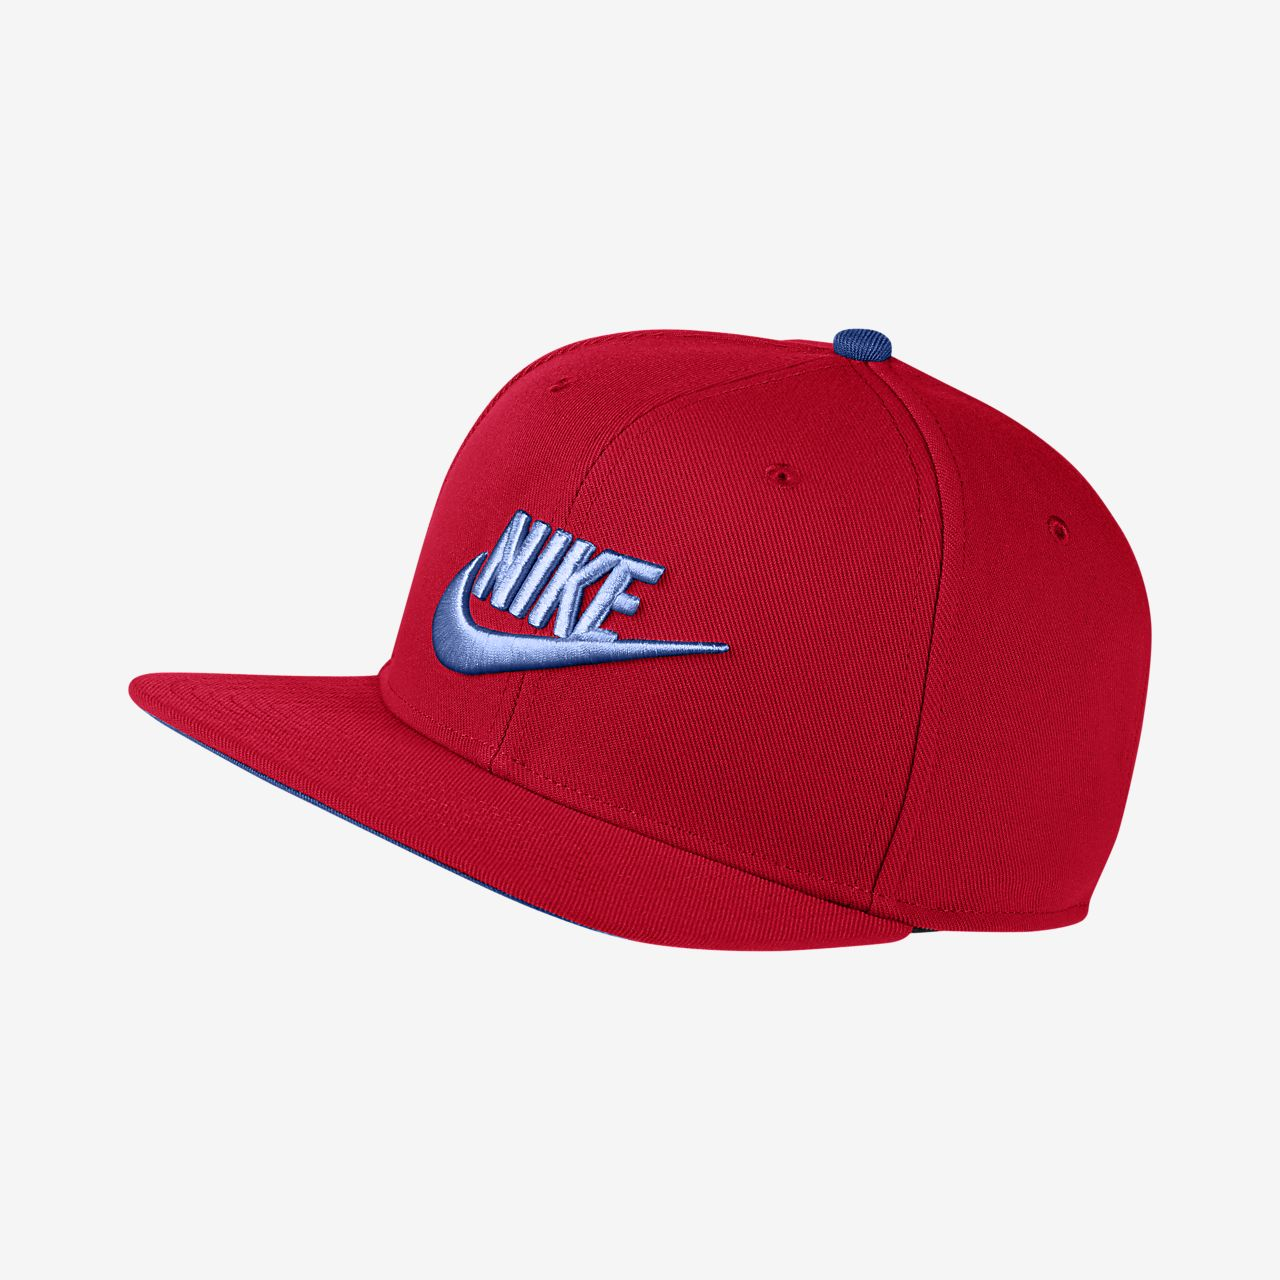 8de90291005 Nike Sportswear Pro Adjustable Hat. Nike.com